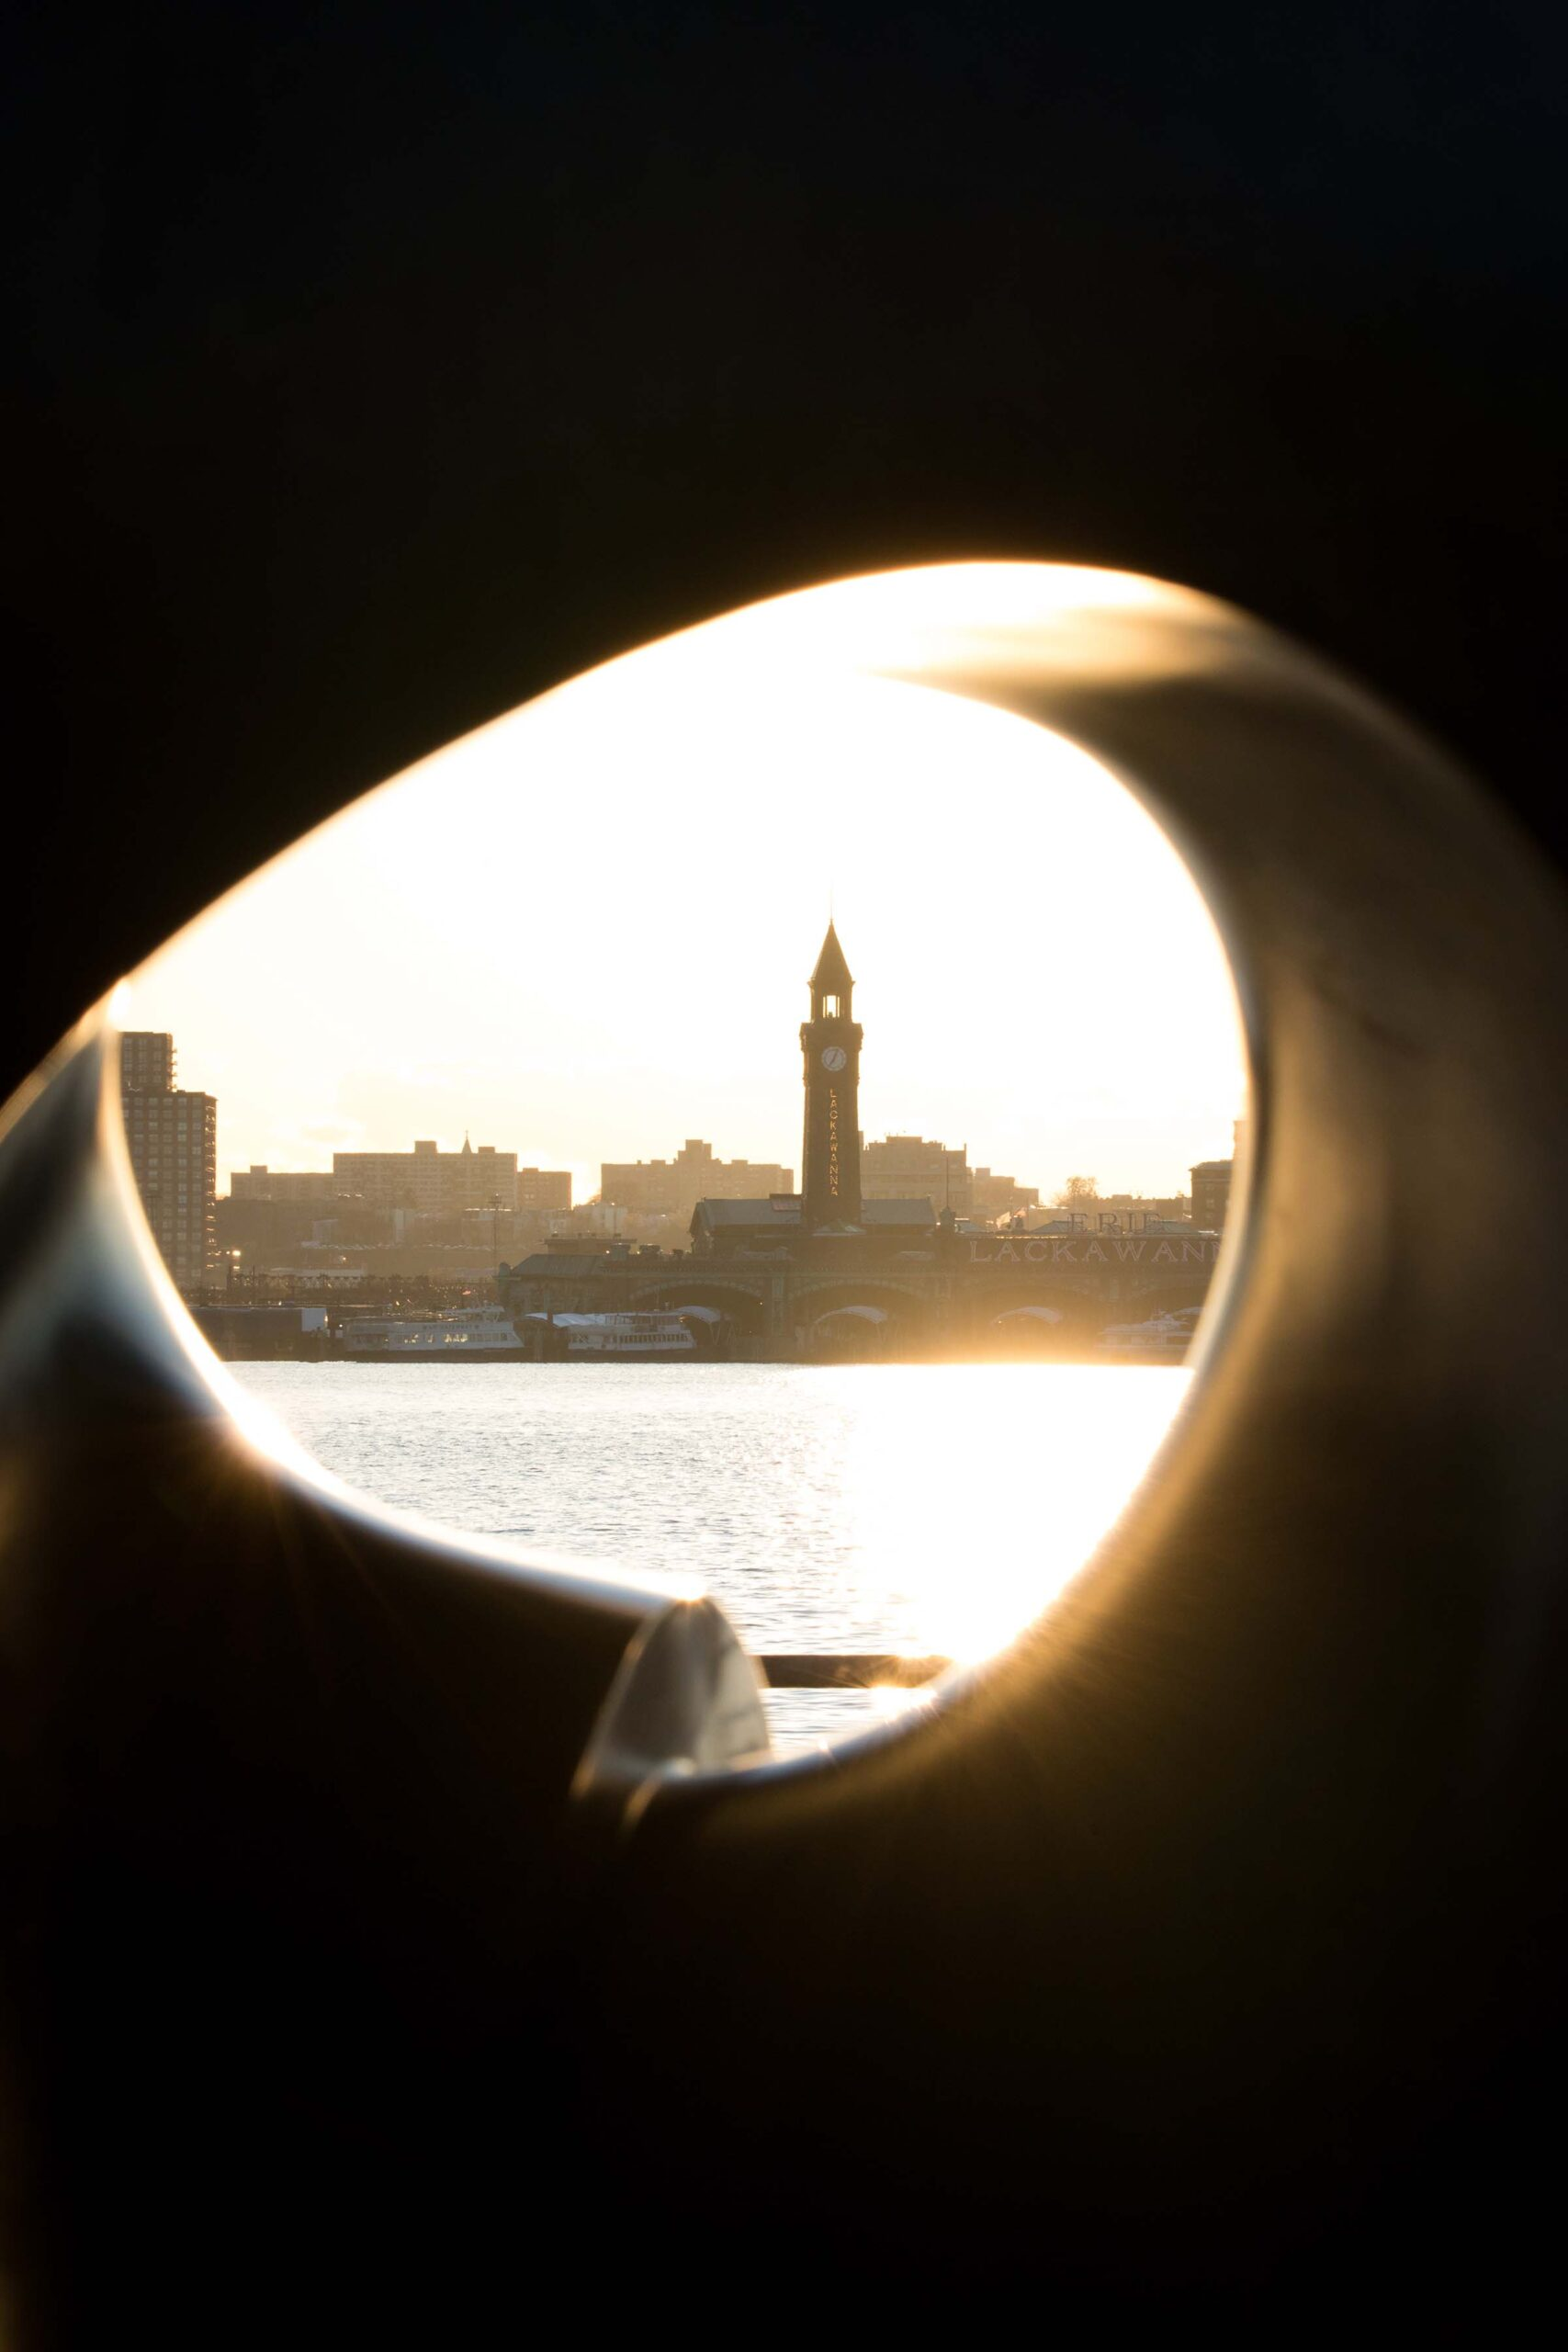 Through the Apple's core you can see the tower across the Hudson River in New Jersey